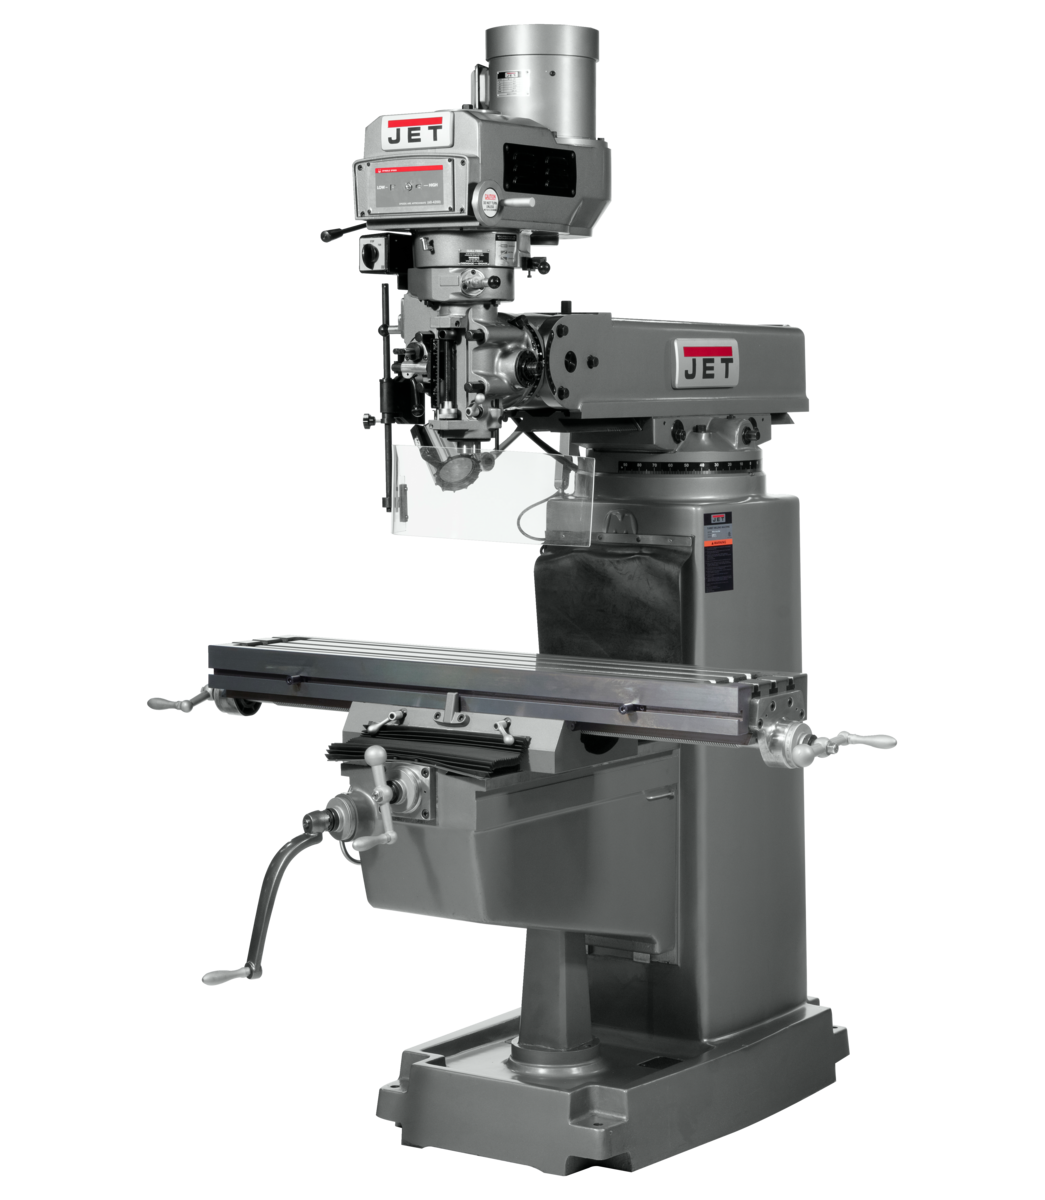 JTM-1050VS2 Mill With ACU-RITE 303 DRO and X-Axis Powerfeed